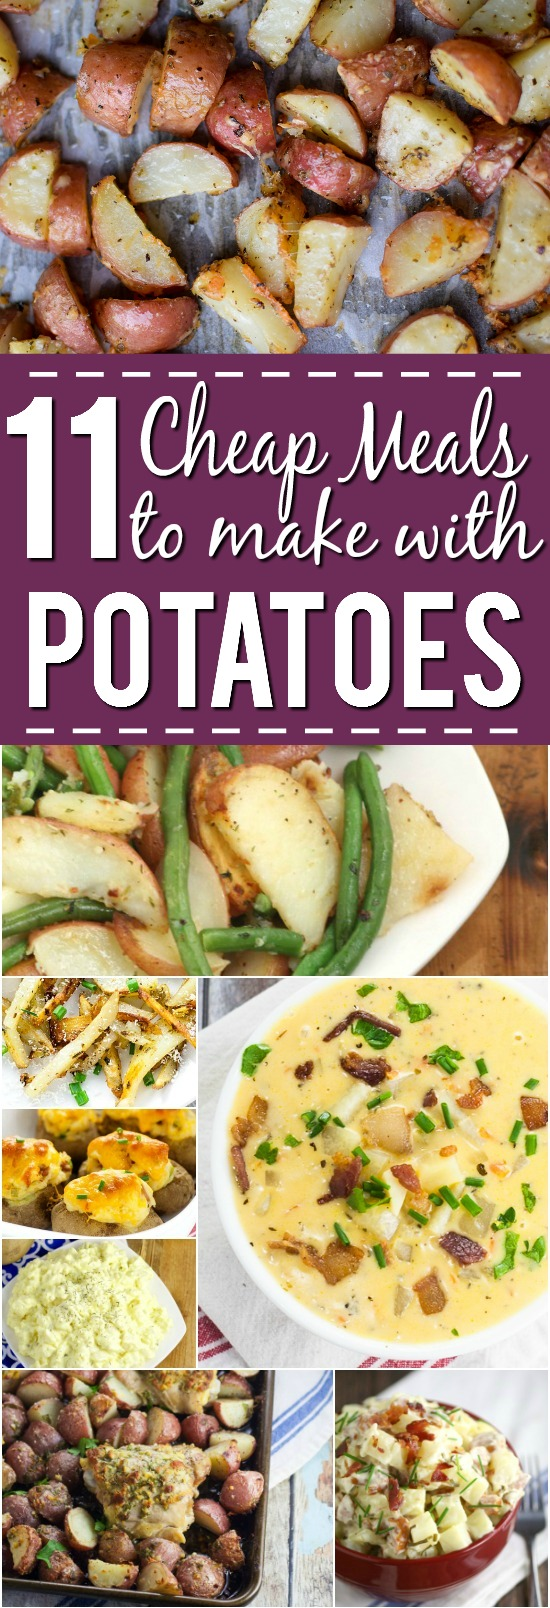 11 Cheap Meals with Potatoes -You can save money by making some frugal meals to stretch your food and your money with these 11 yummy and filling Cheap Meals to Make with Potatoes. Frugal living and saving money with these frugal meals with potatoes. They're sooo good too!